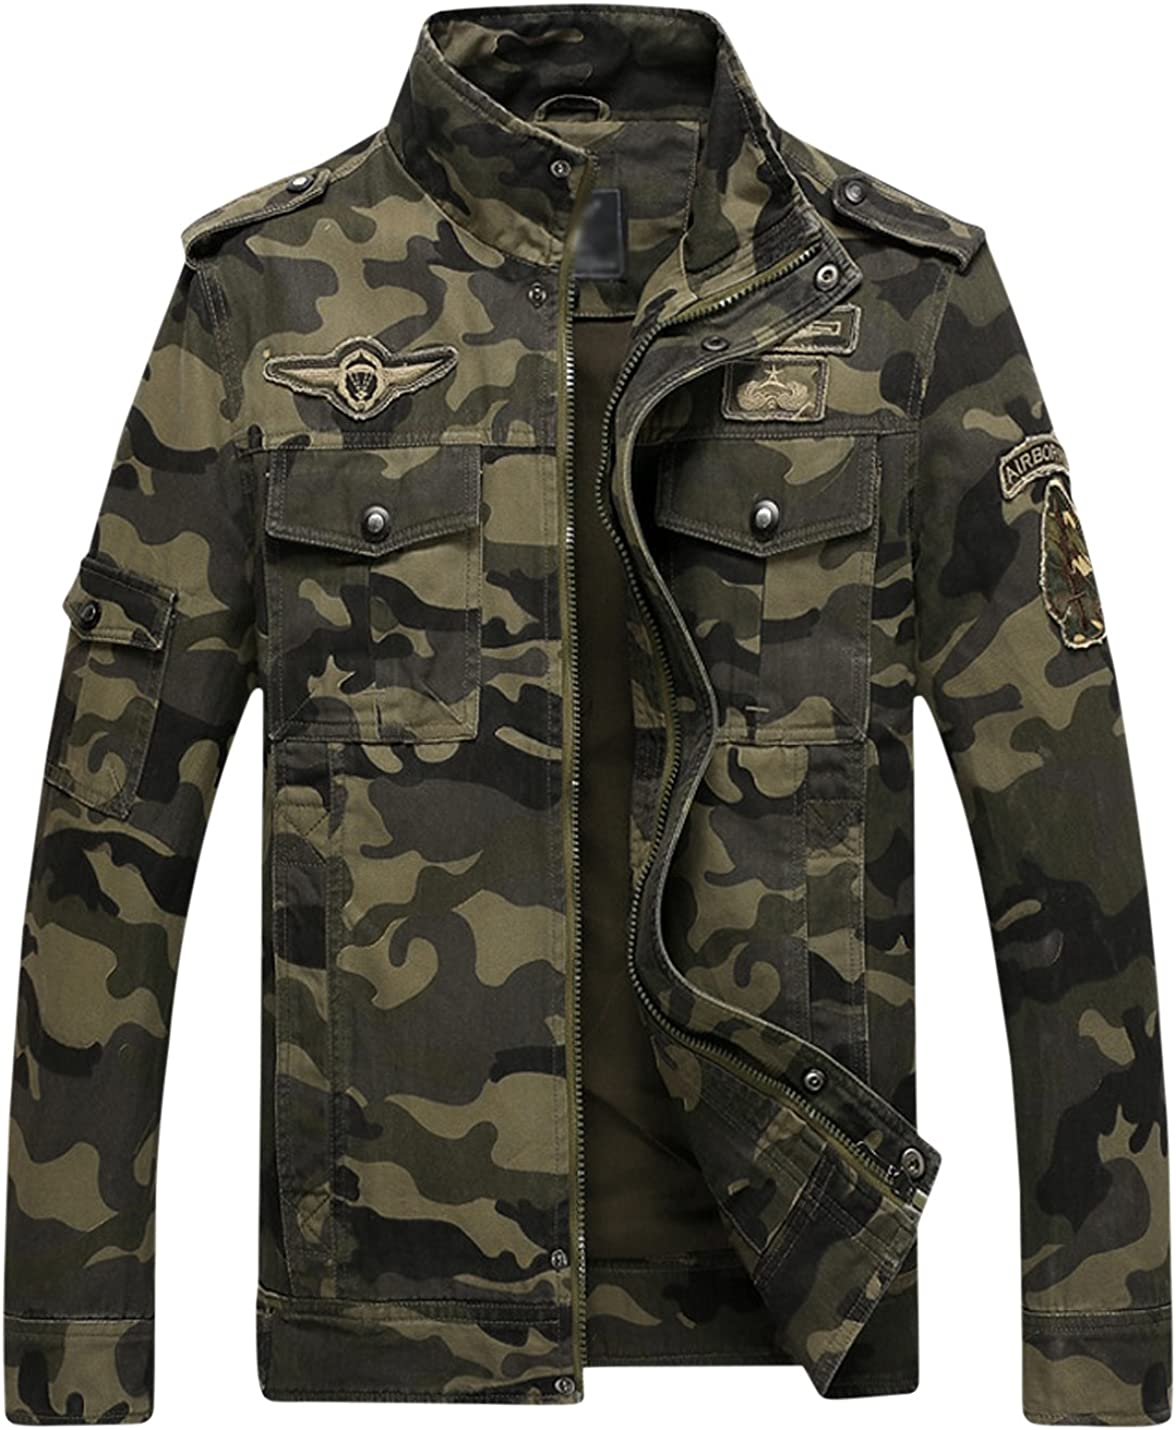 Springrain Men's Casual Slim Stand Tooling Cot Camouflage Collar Max 72% OFF Challenge the lowest price of Japan ☆